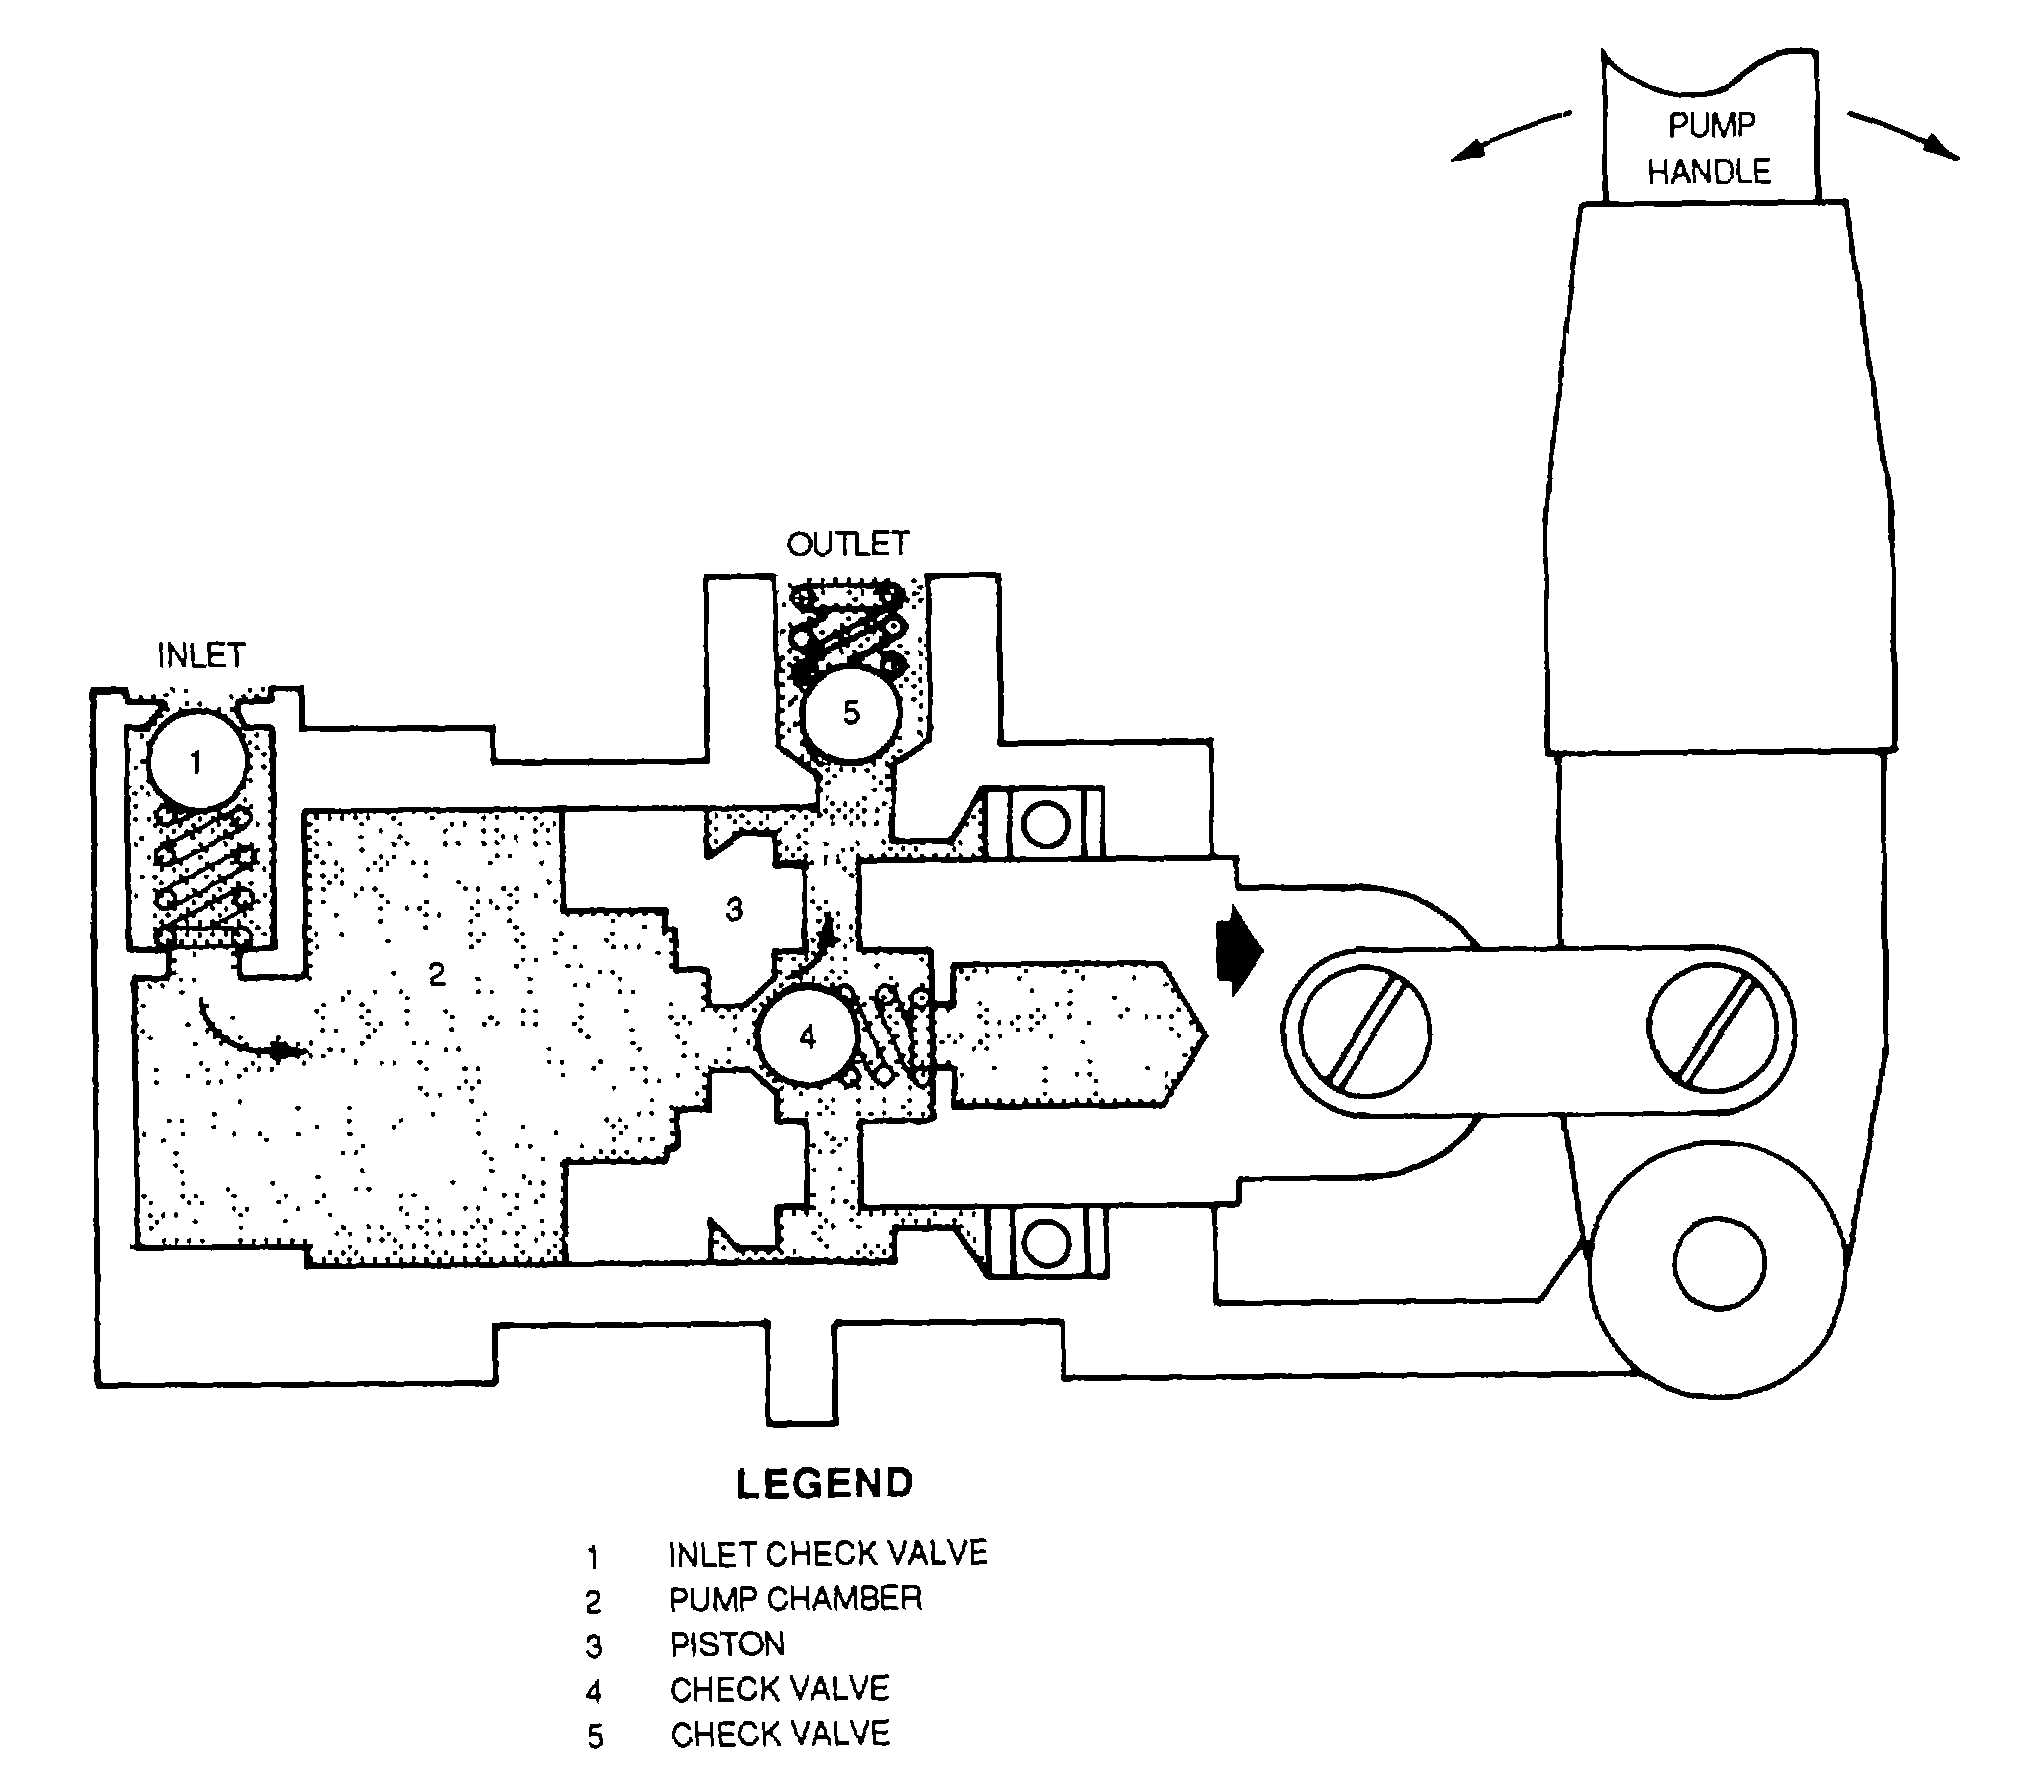 98 chevy s10 fuel pump wiring diagram html